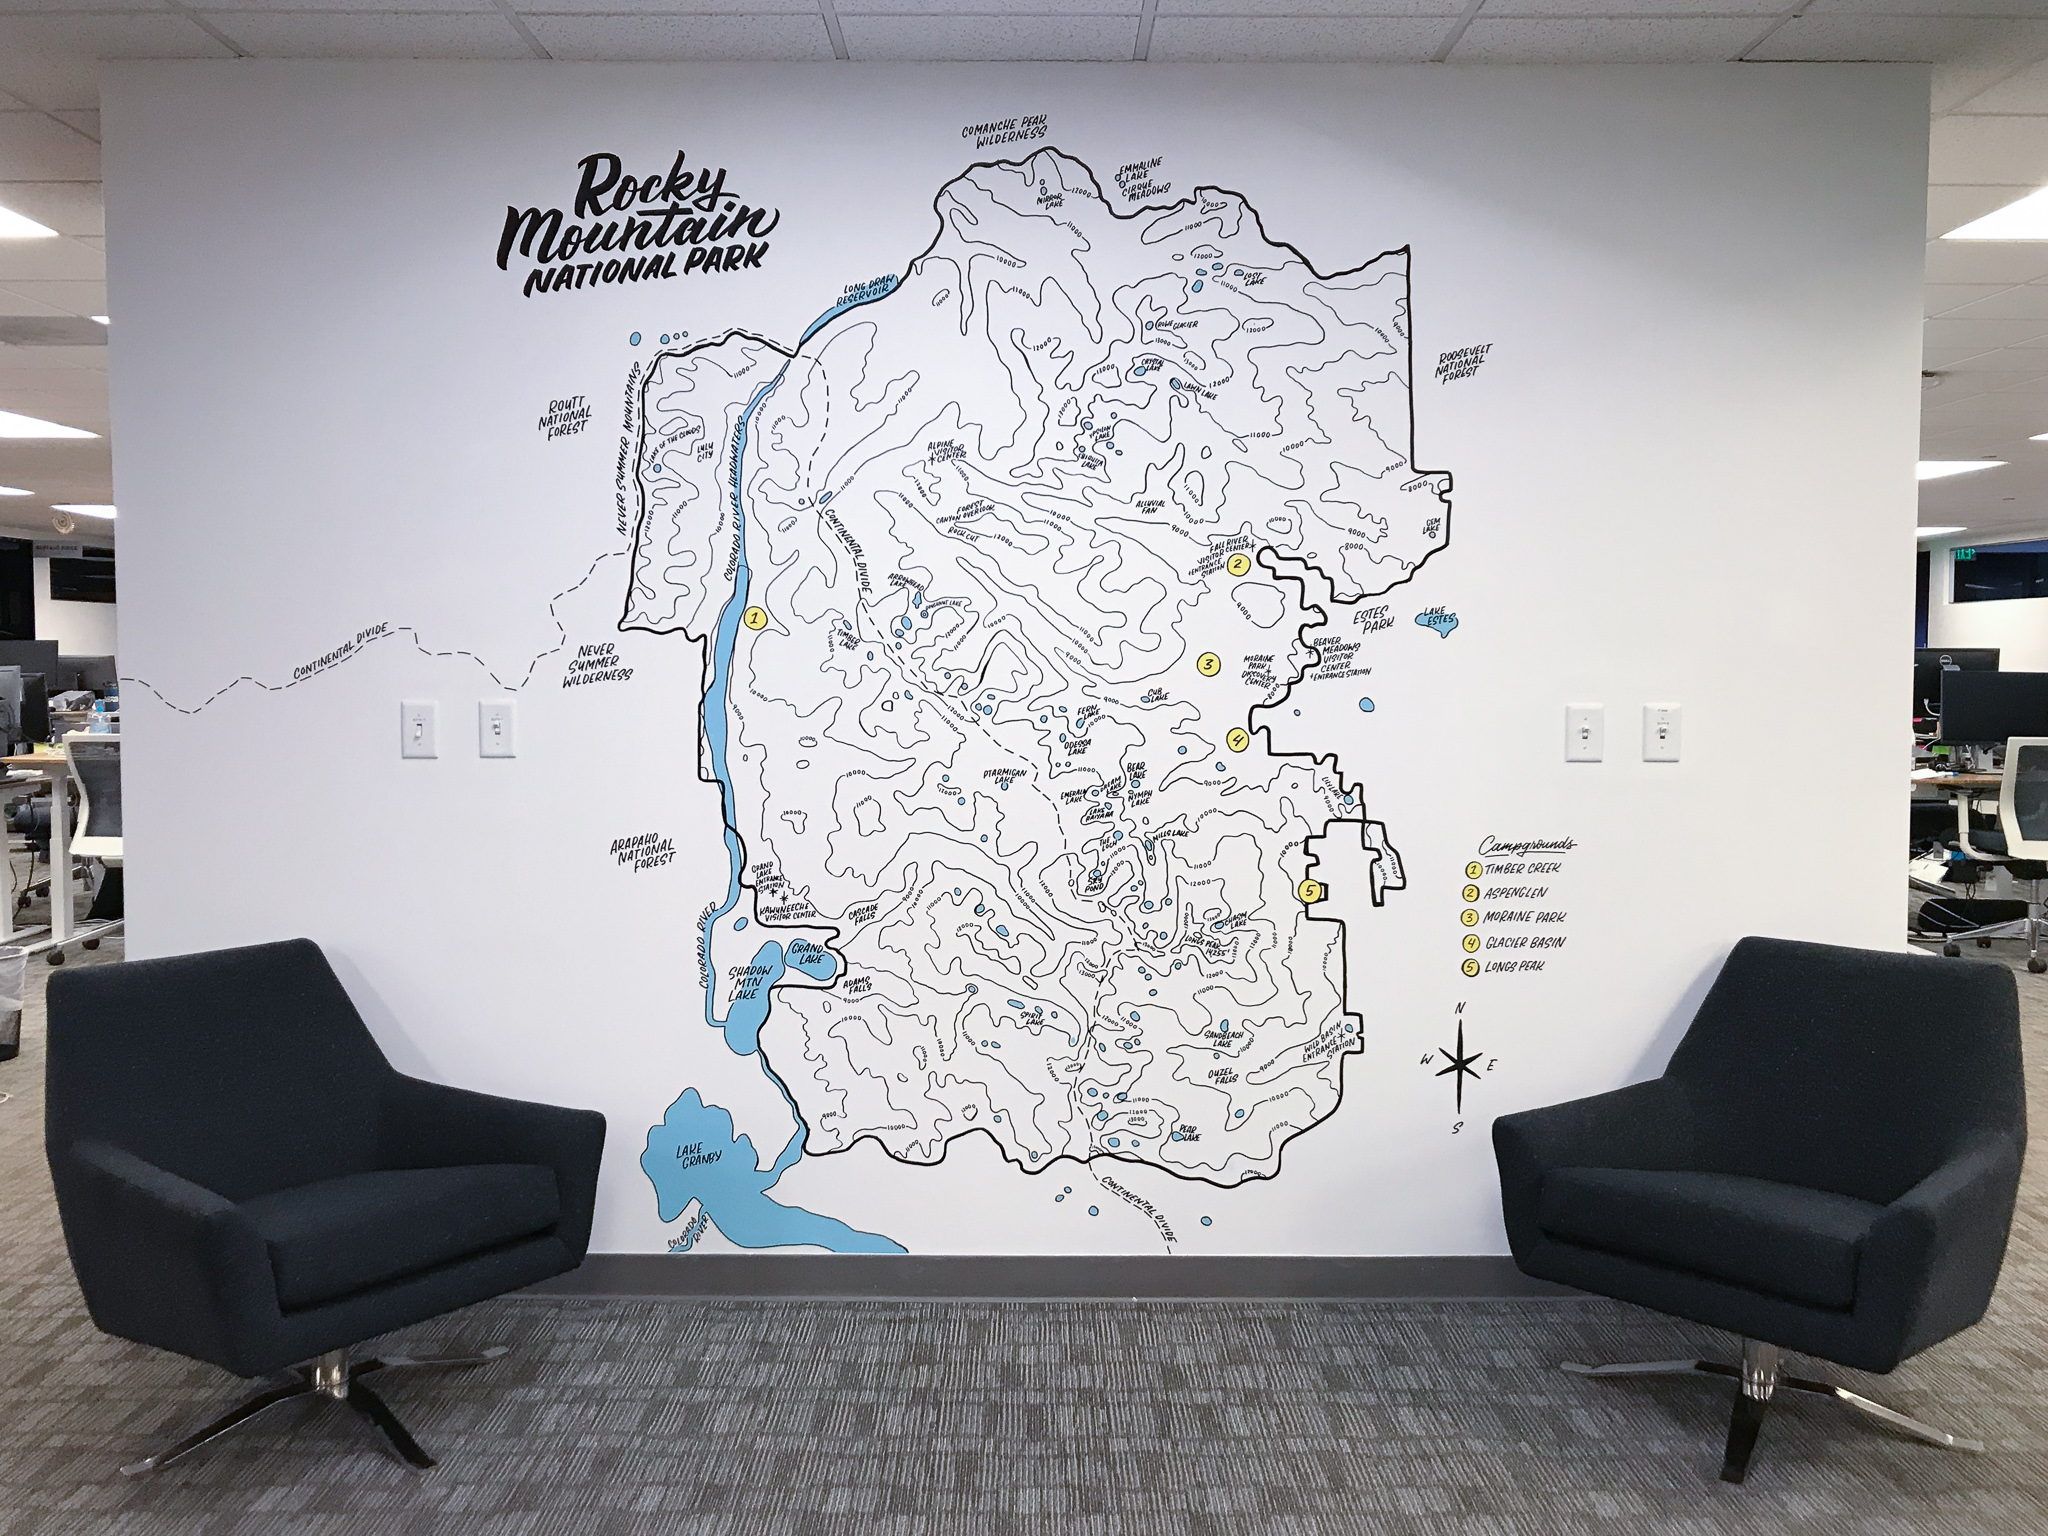 Gusto Denver Colorado Rocky Mountain National Park topographic map map mural by Hillery Powers